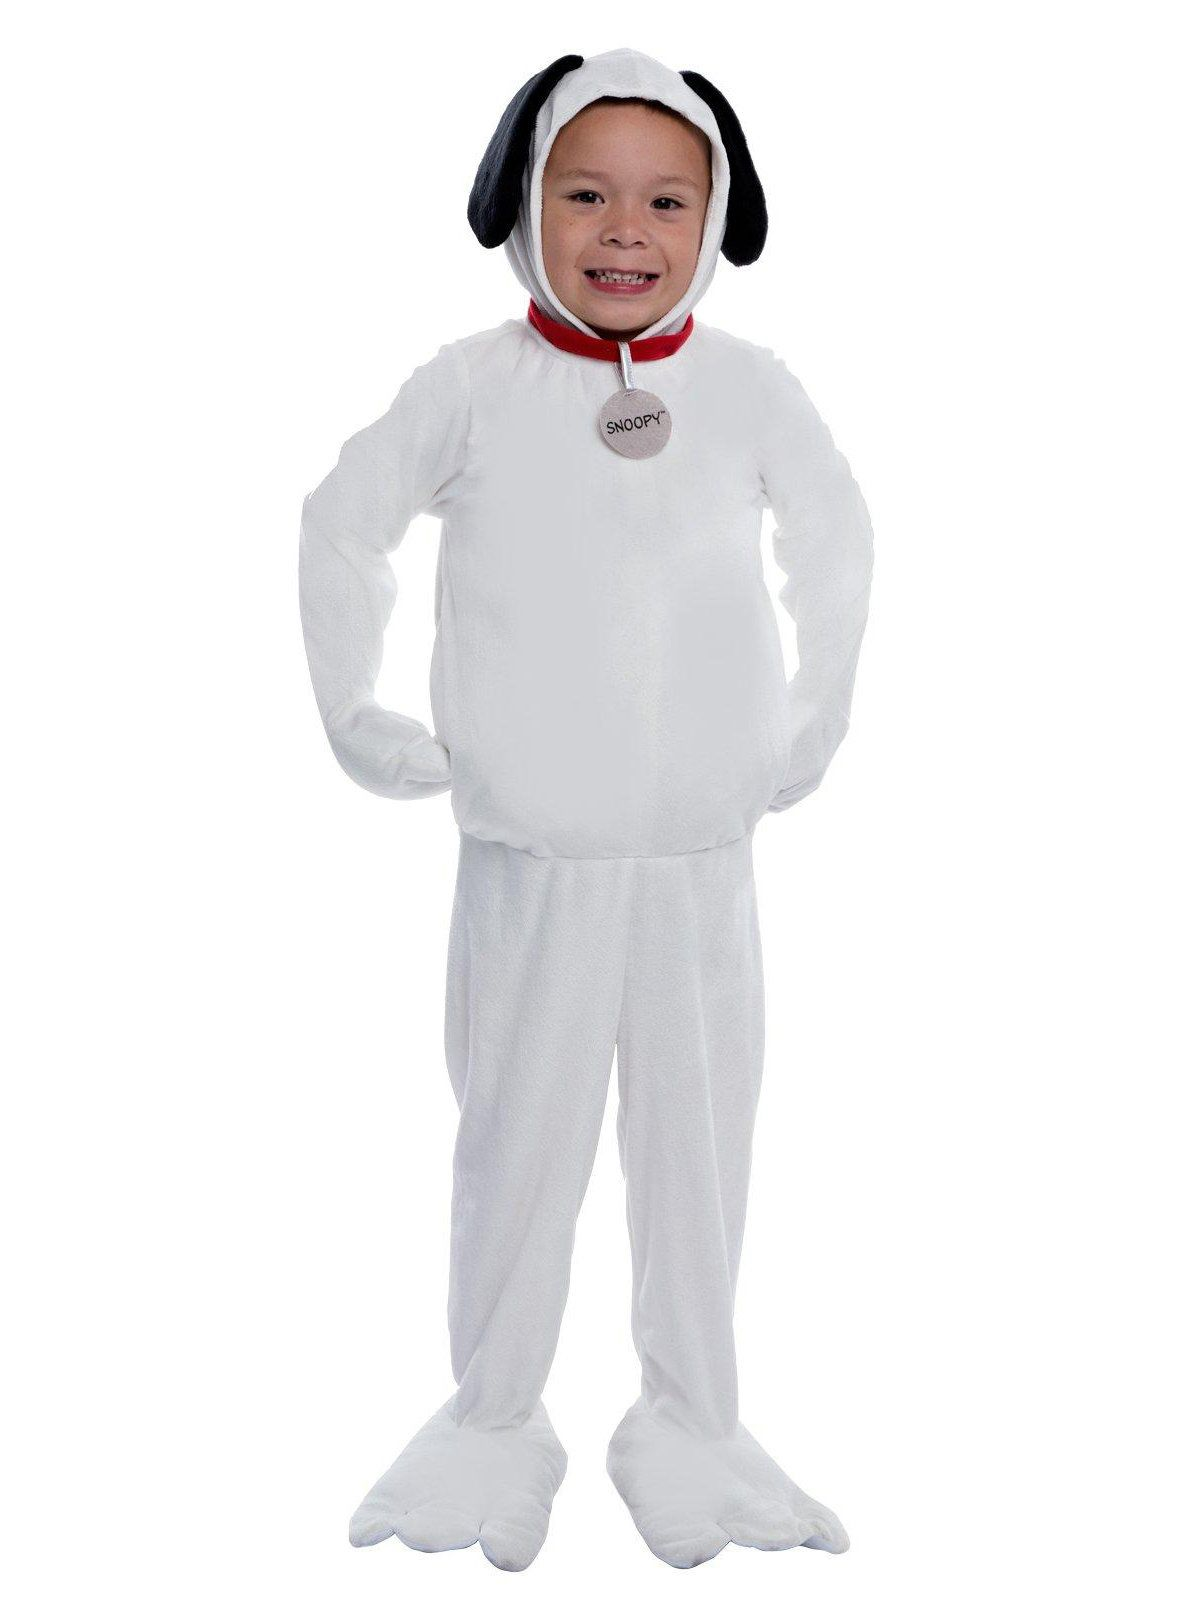 Peanuts Snoopy Deluxe Costume For Children  sc 1 st  Wholesale Halloween Costumes & Peanuts: Snoopy Deluxe Costume For Children | Wholesale Halloween ...